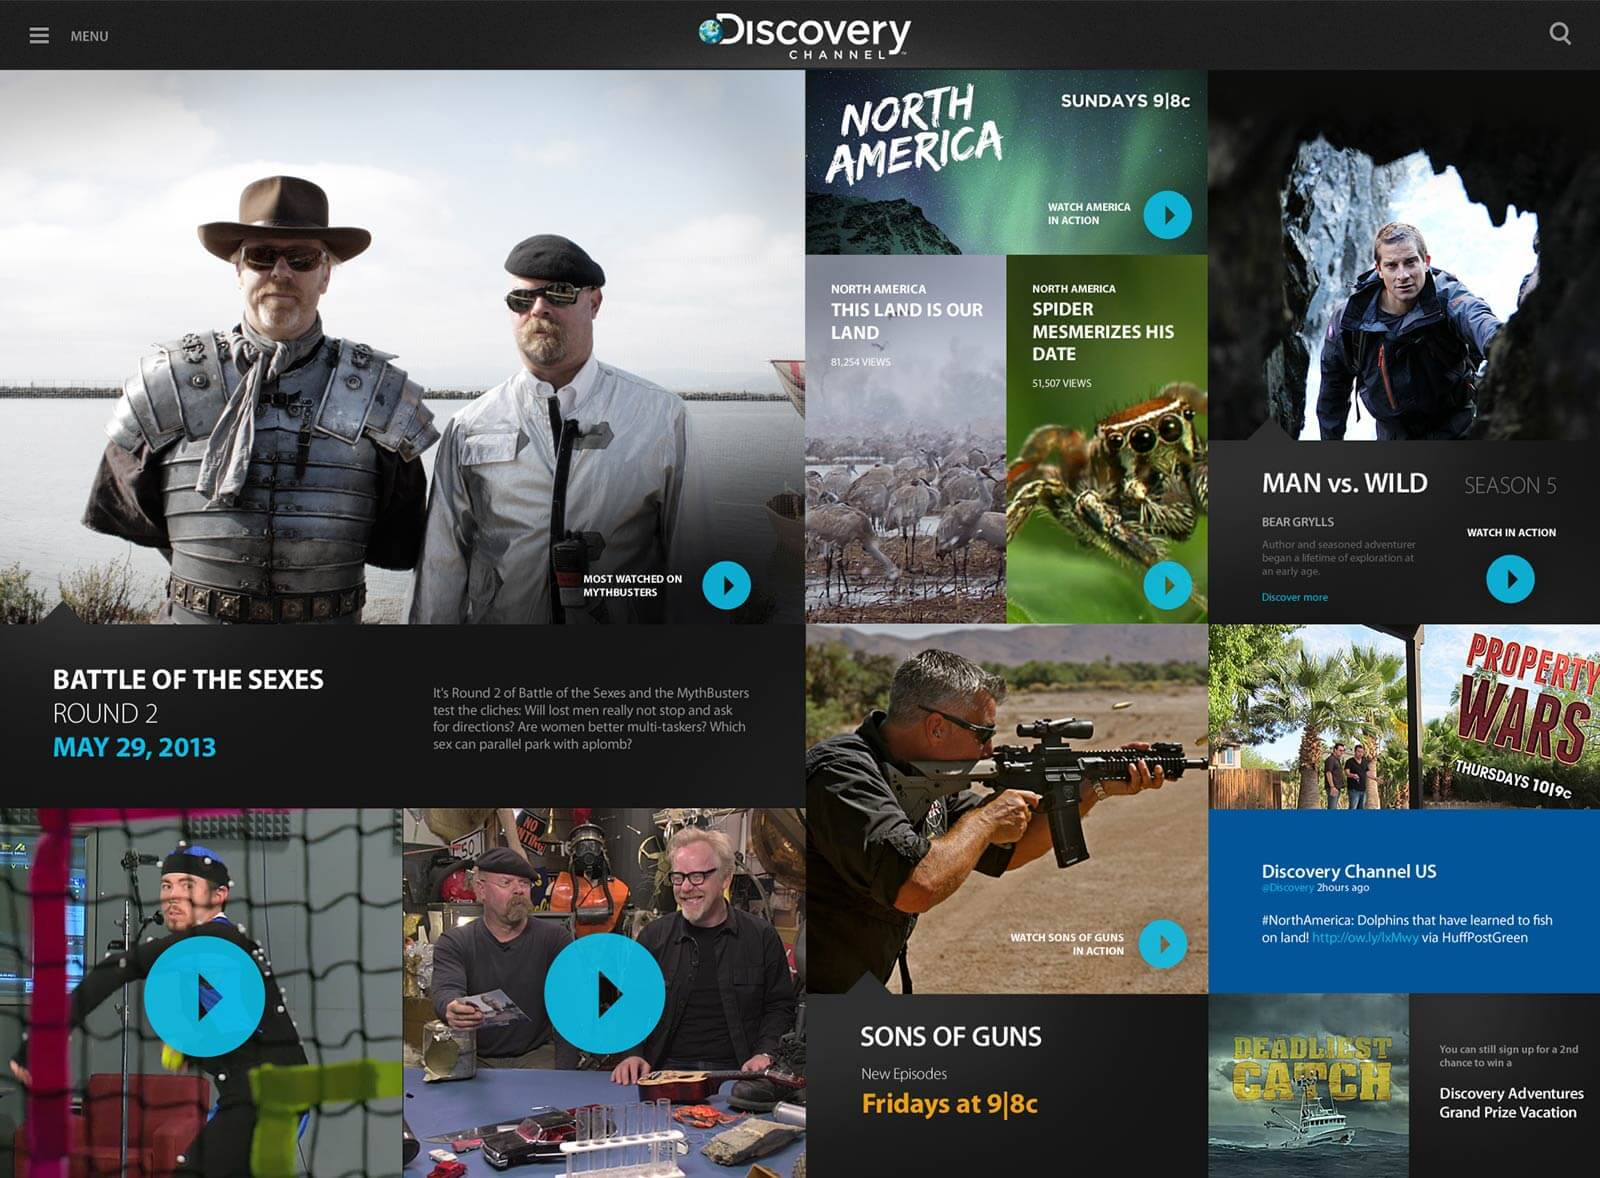 Discovery TV popular shows